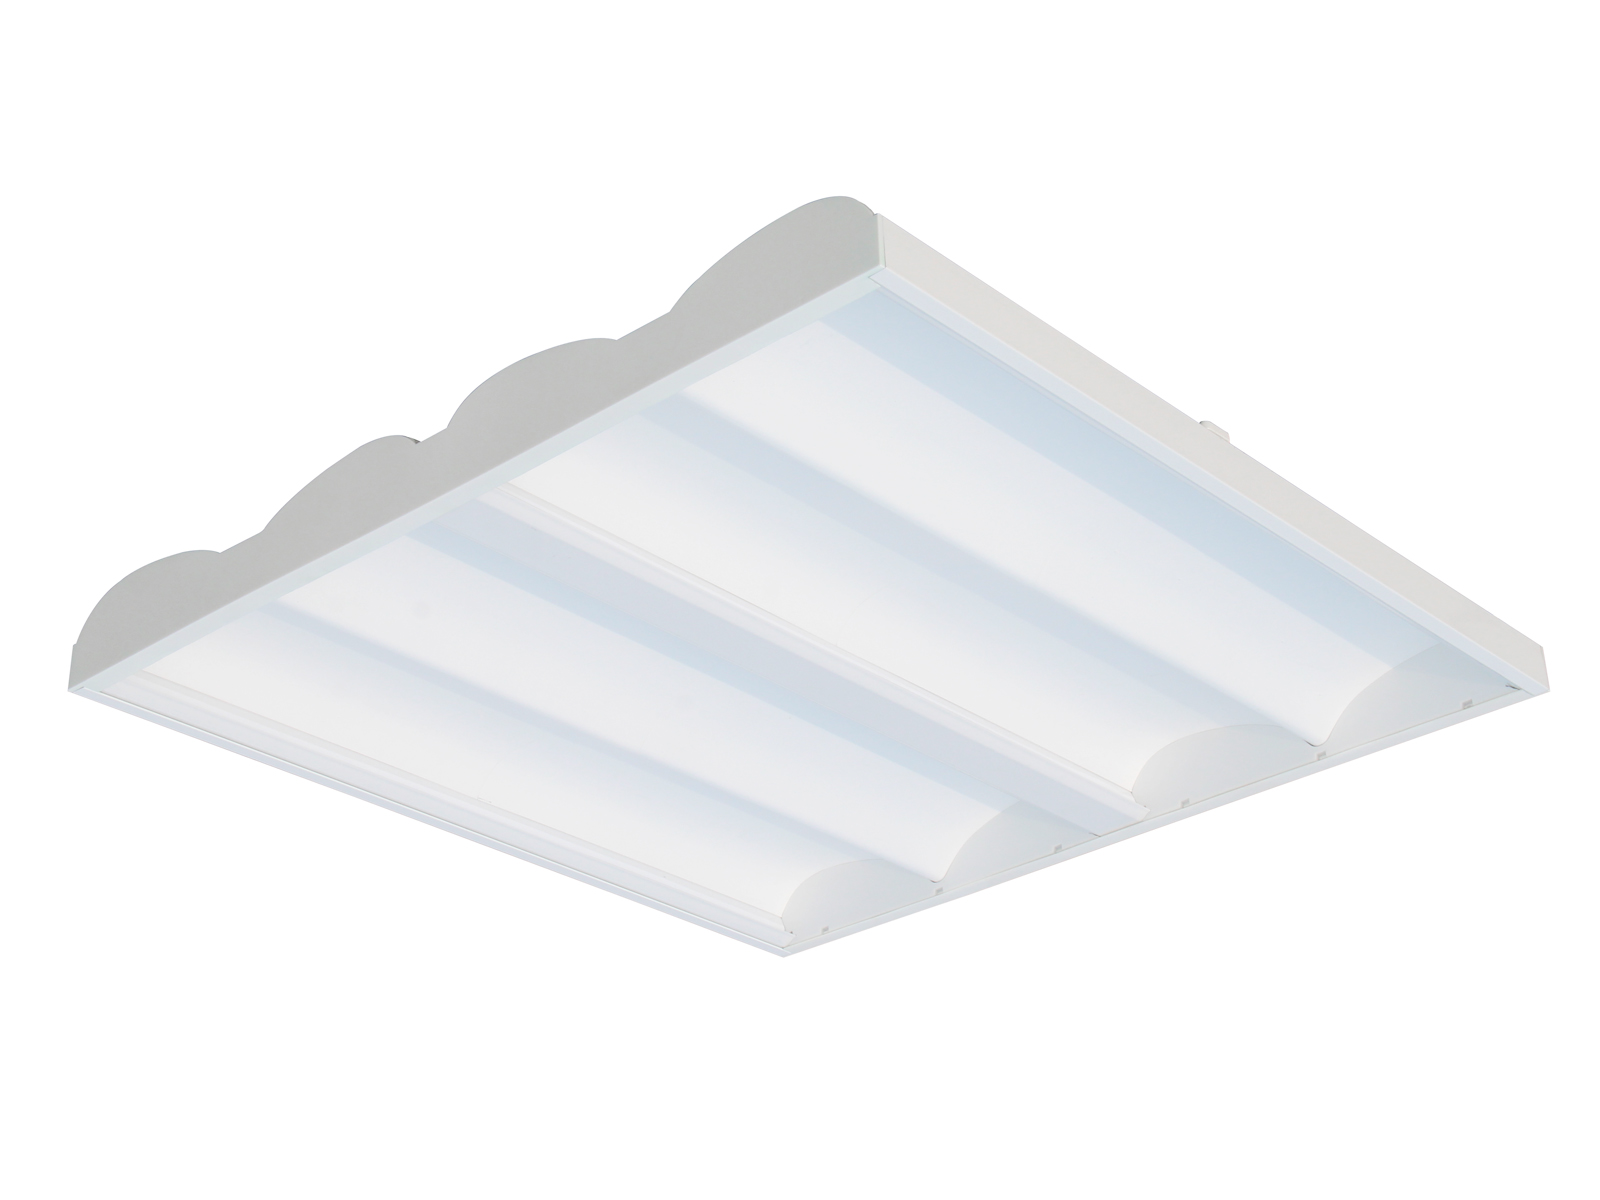 PL-E LED Panel Light